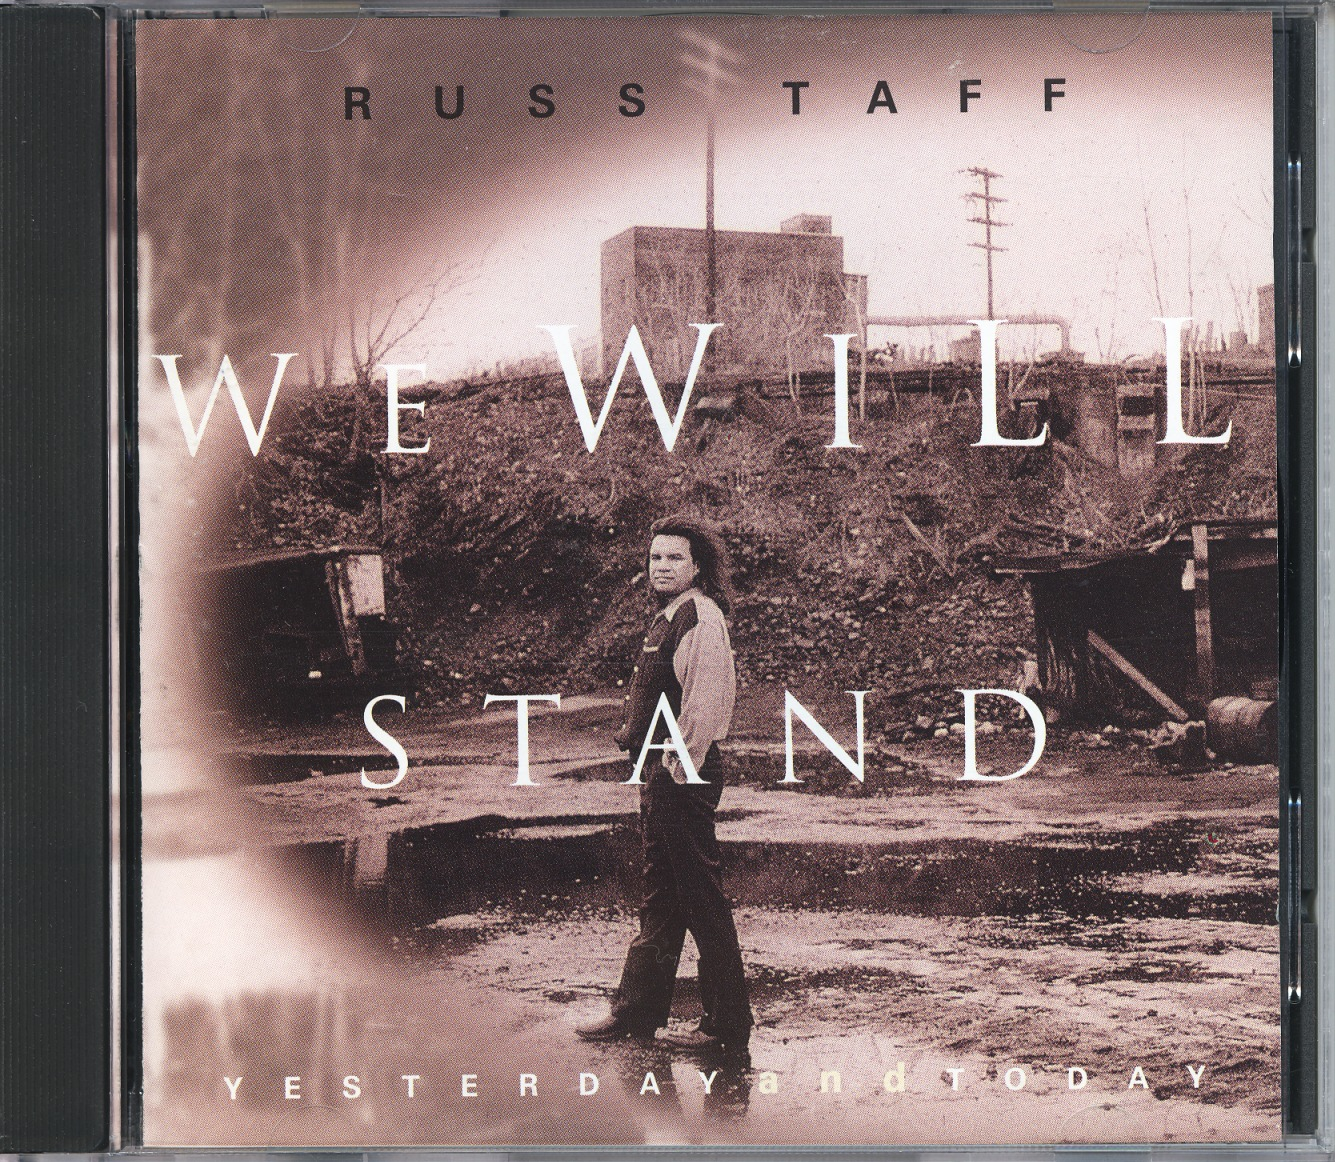 RUSS TAFF/WE WILL STAND - YESTERDAY AND TODAY (USED)